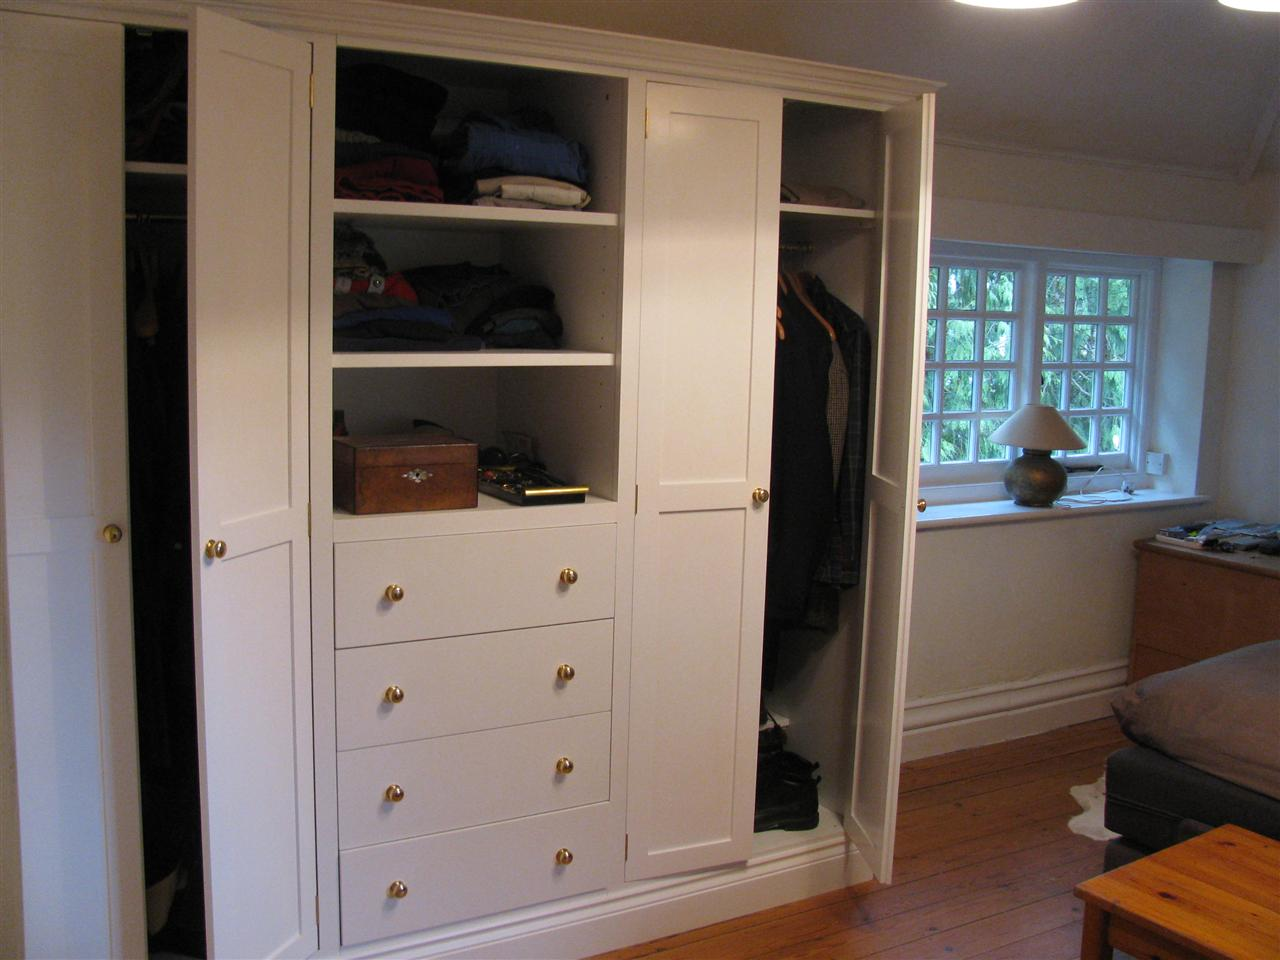 Wardrobe with bookshelves